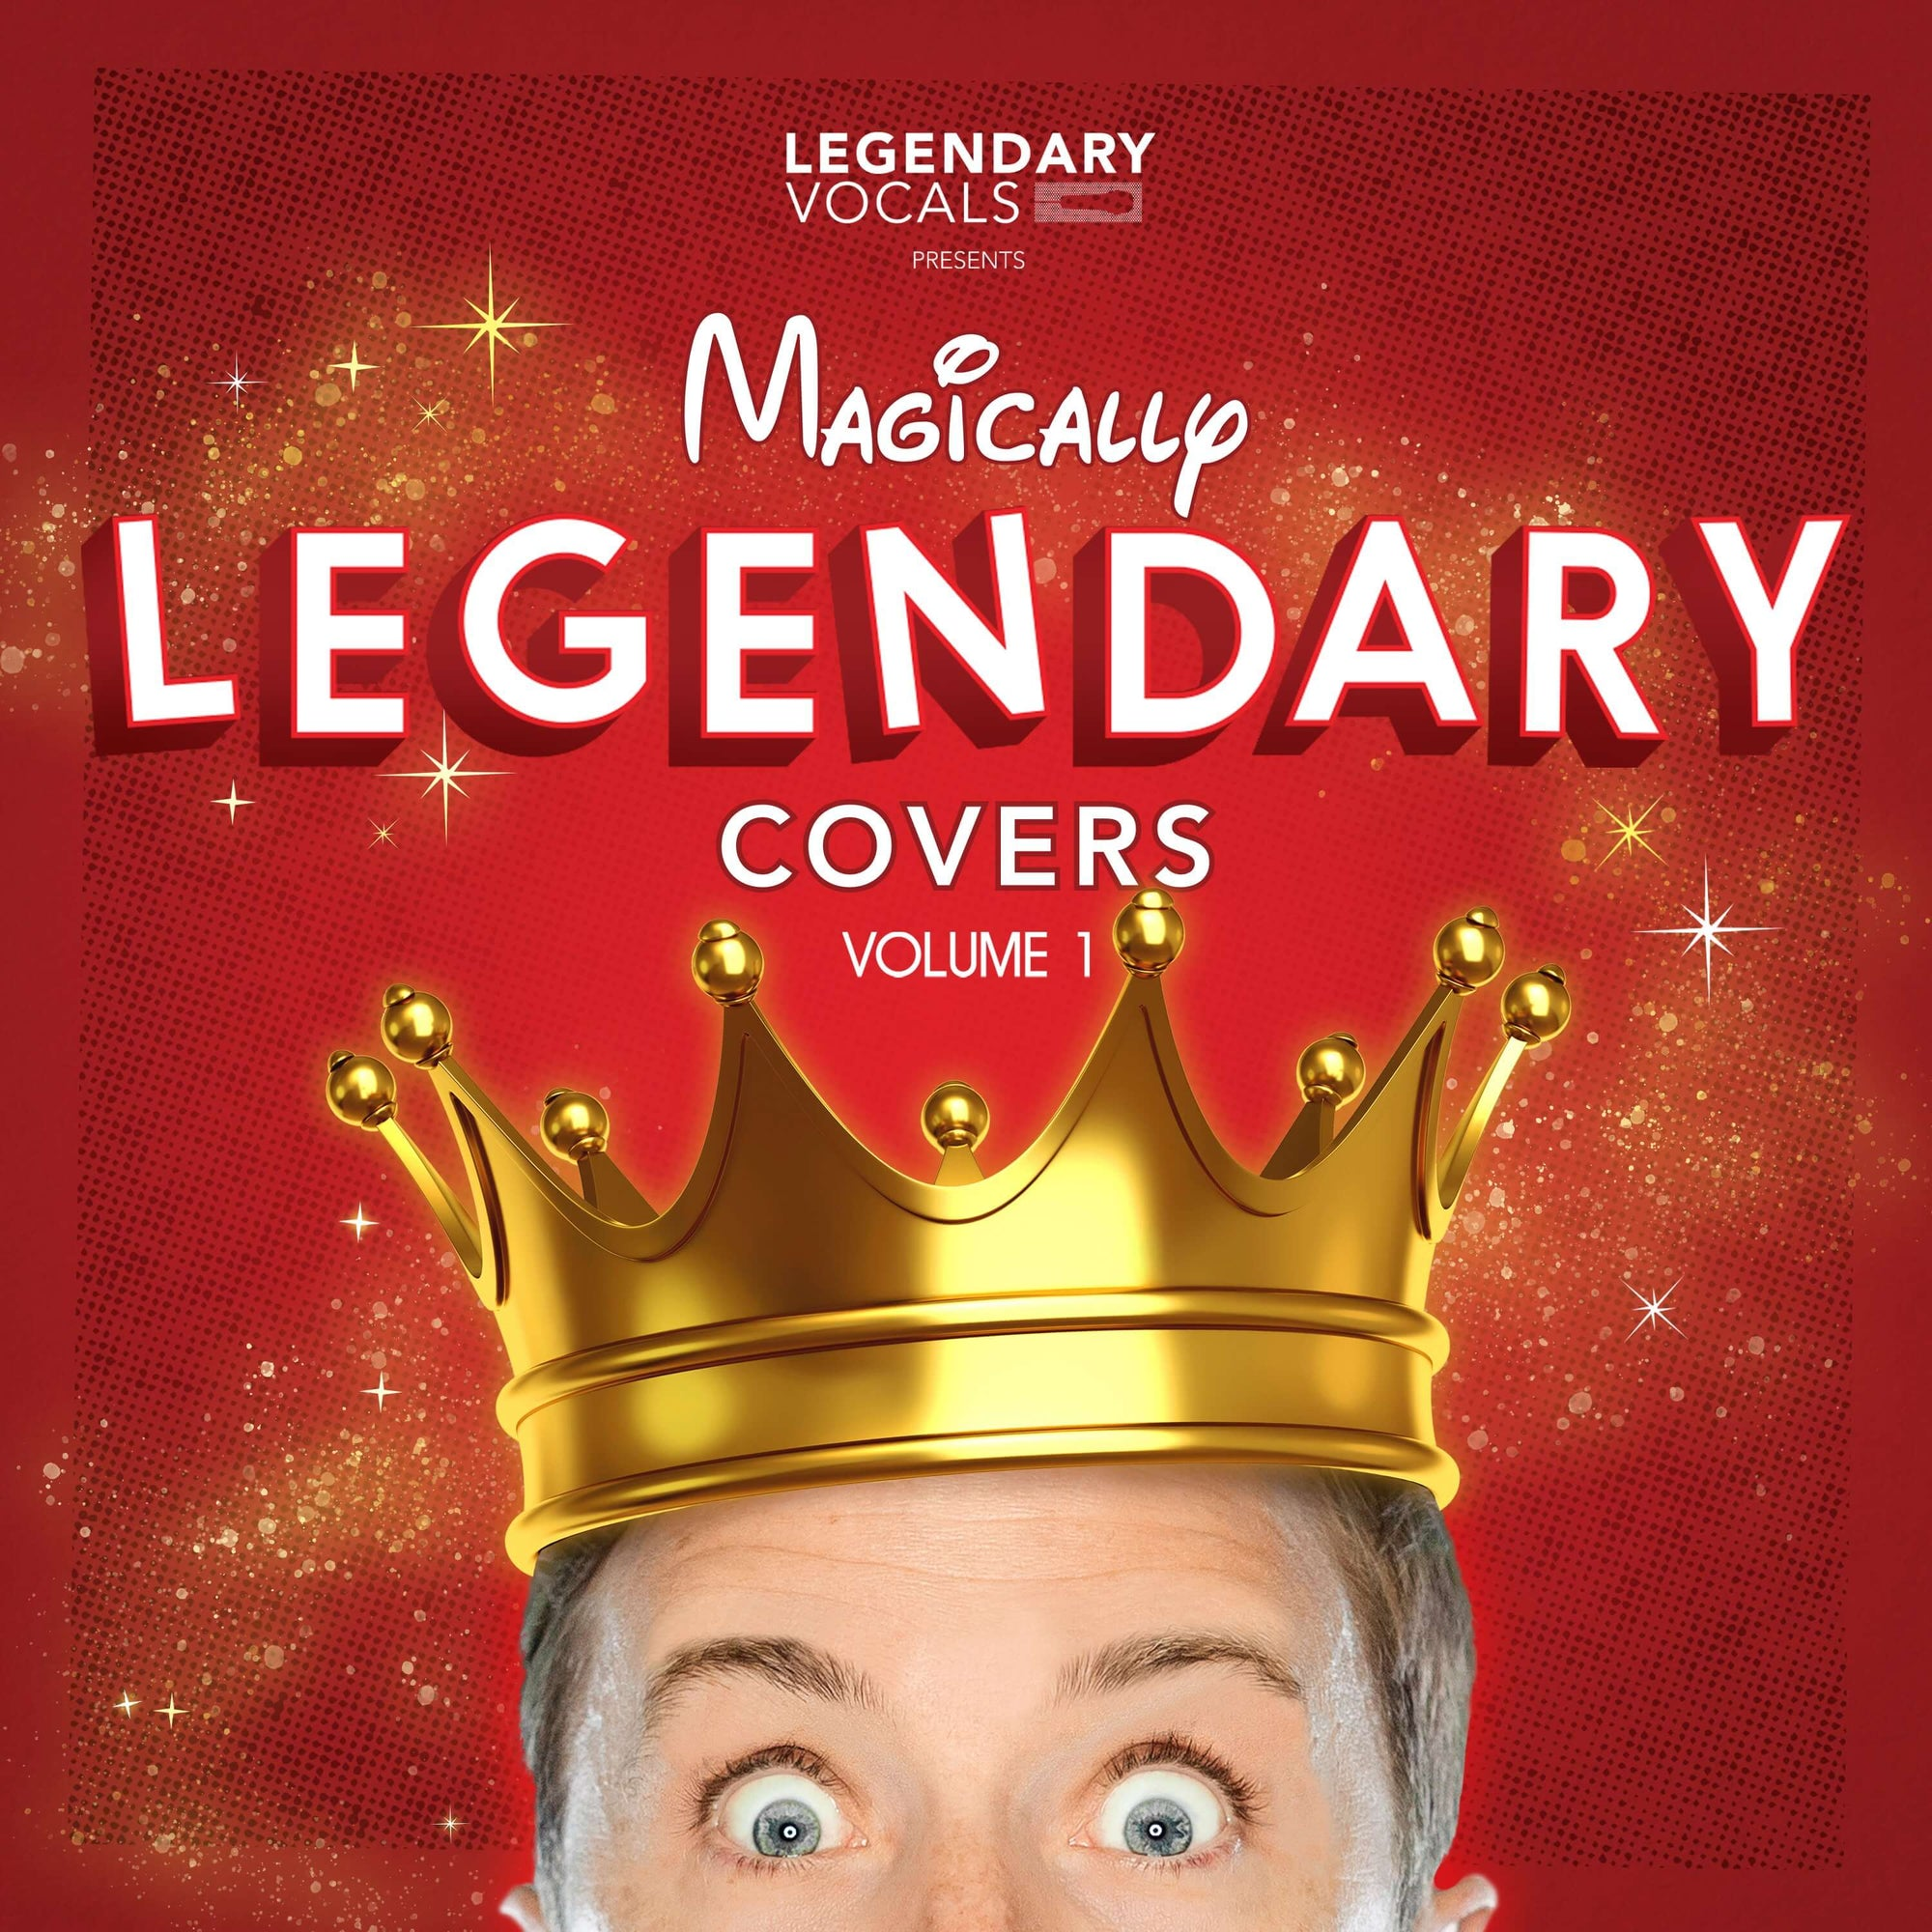 Magically Legendary Vol. I